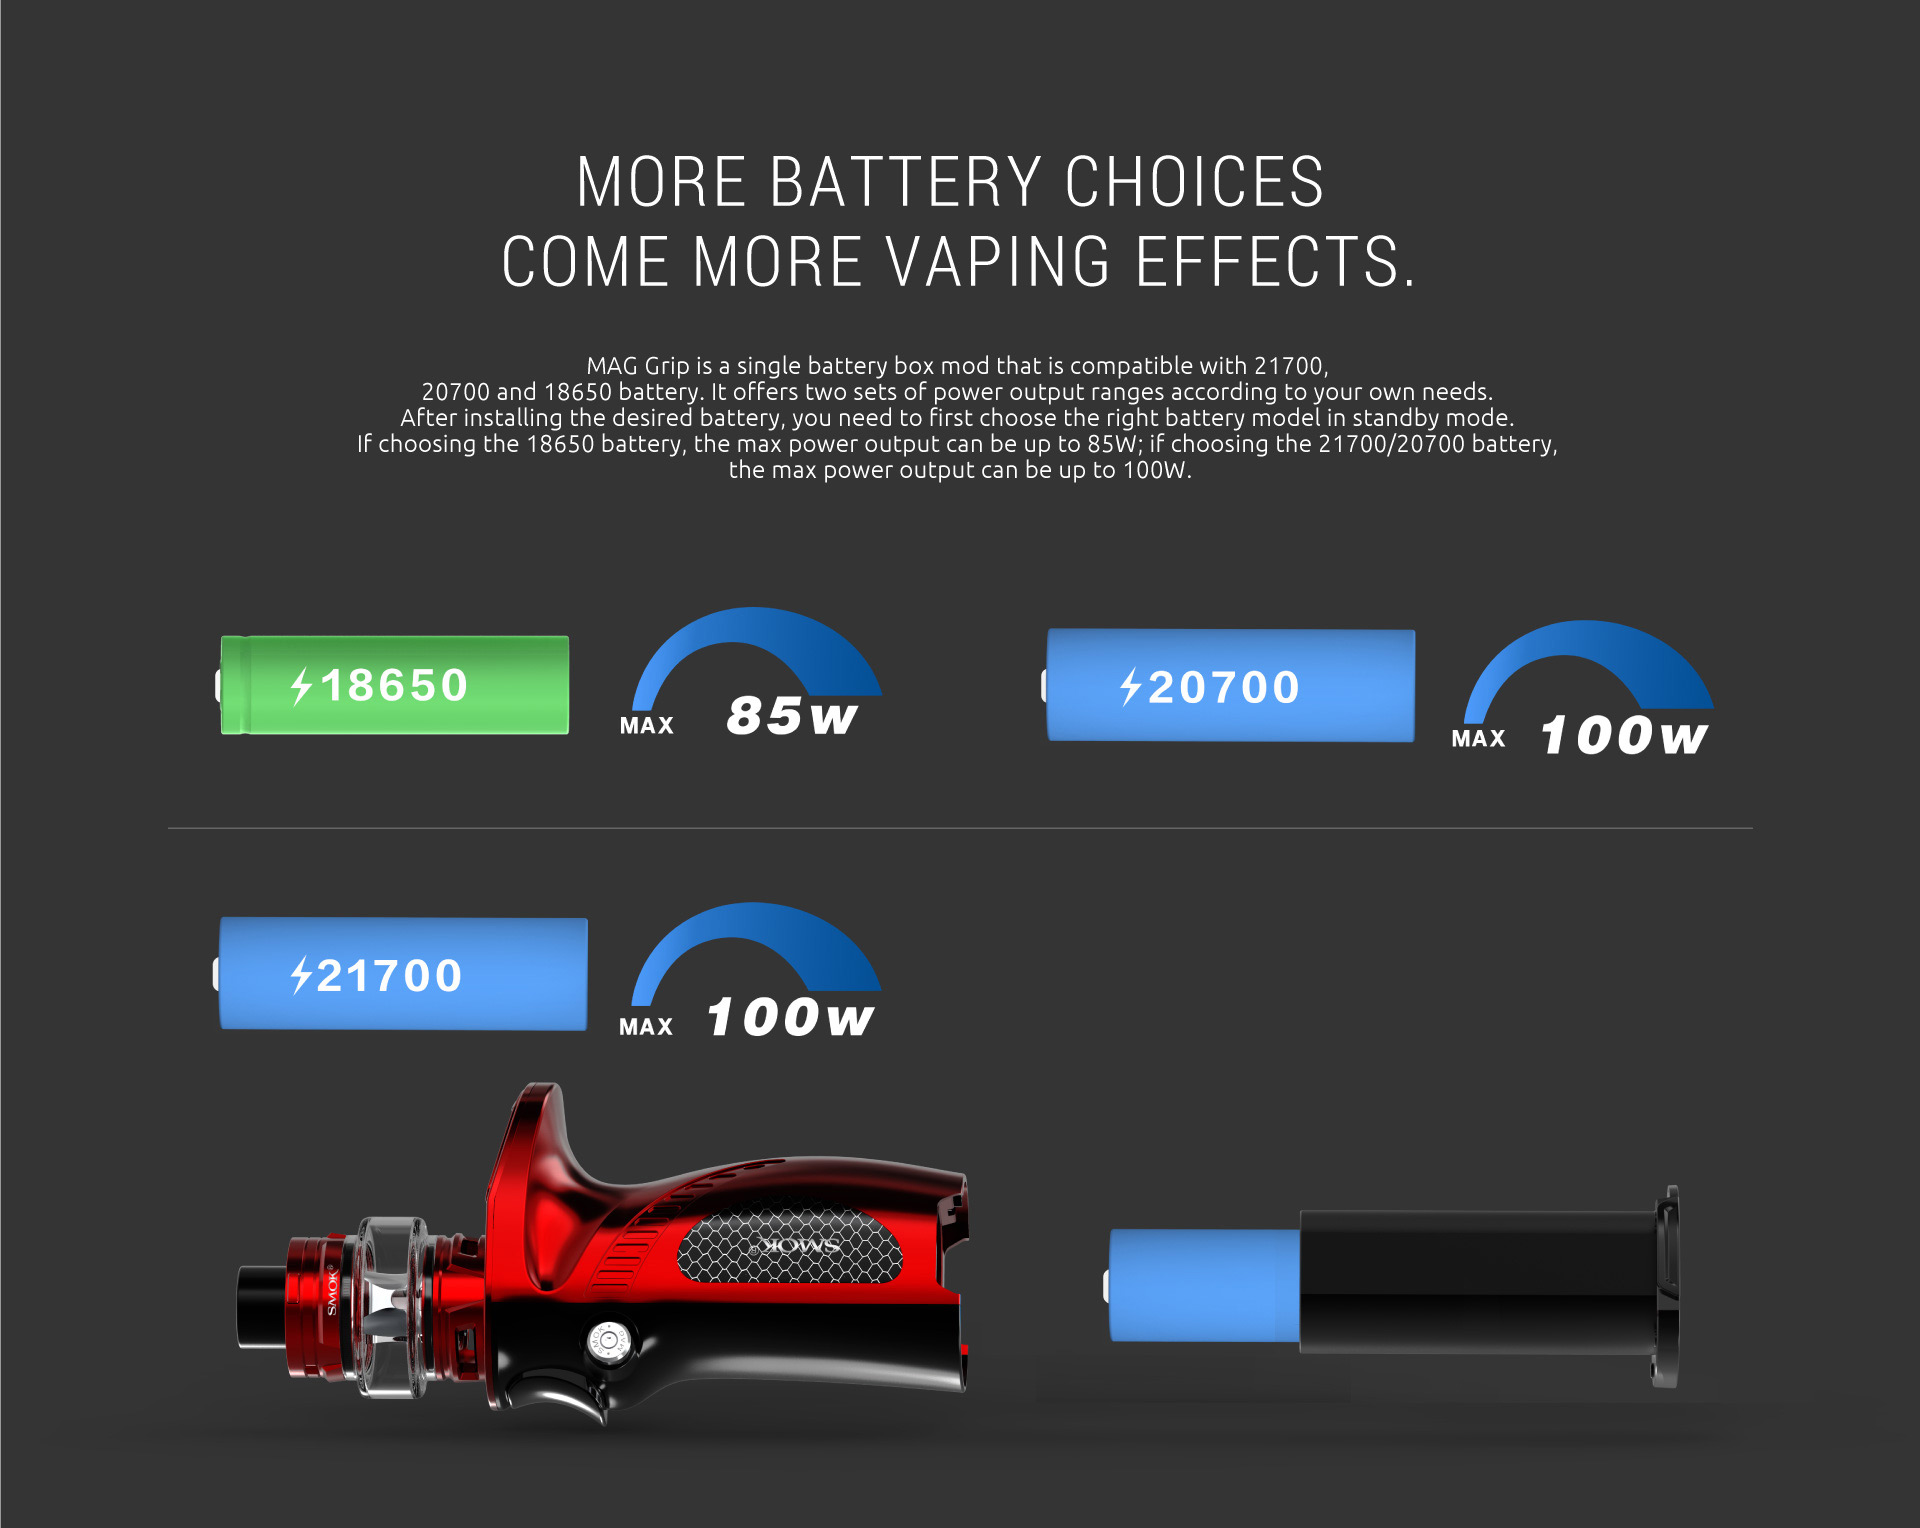 SMOK Mag Grip with More Battery Choices Come More Vaping Effects